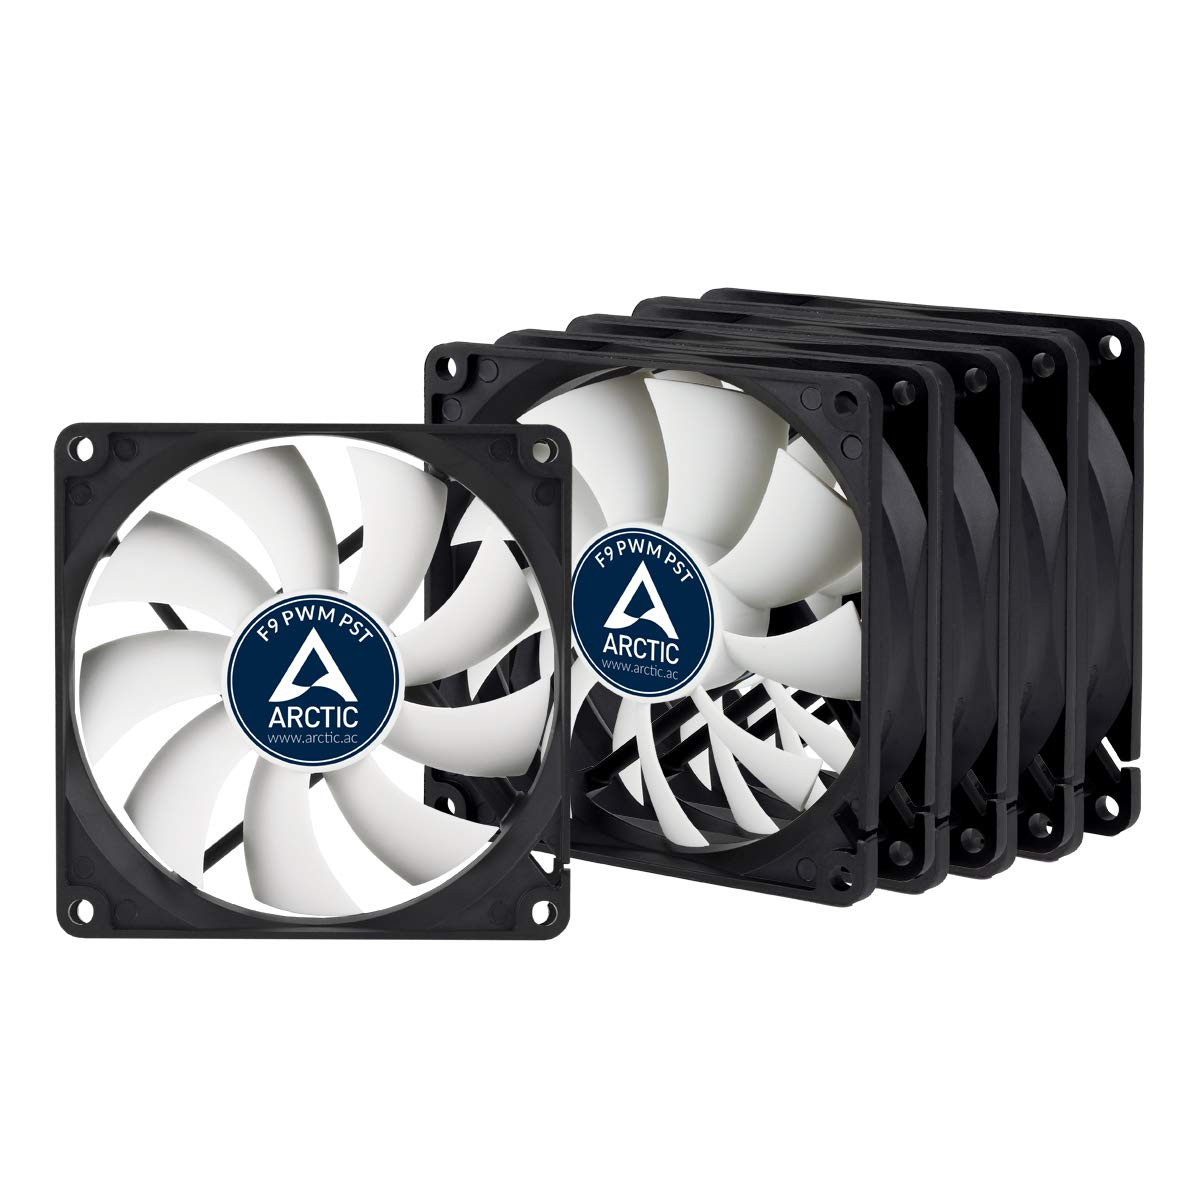 Arctic F9 PWM PST - Value Pack (5pc) - Standard Low Noise PWM Controlled Case Fan with PST Feature